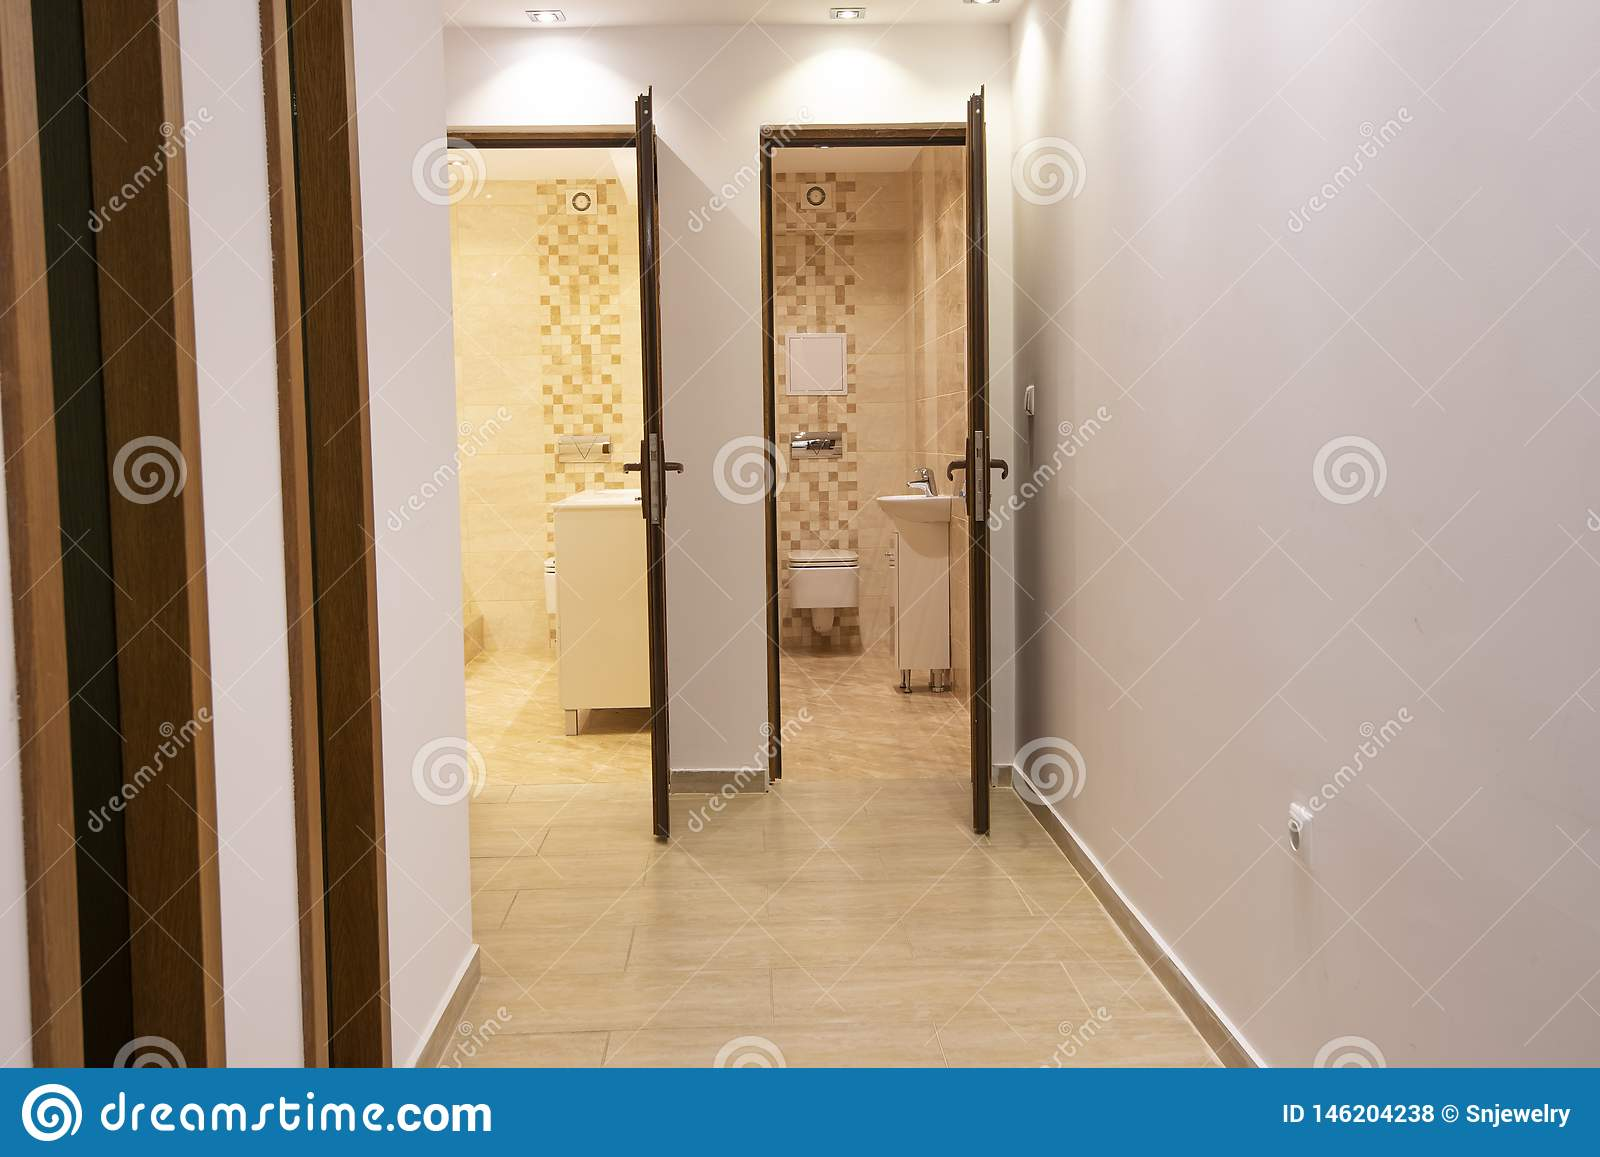 Two Open Doors To Big Modern Bathroom And Toilet Home Interior Stock Photo Image Of Handle Modern 146204238